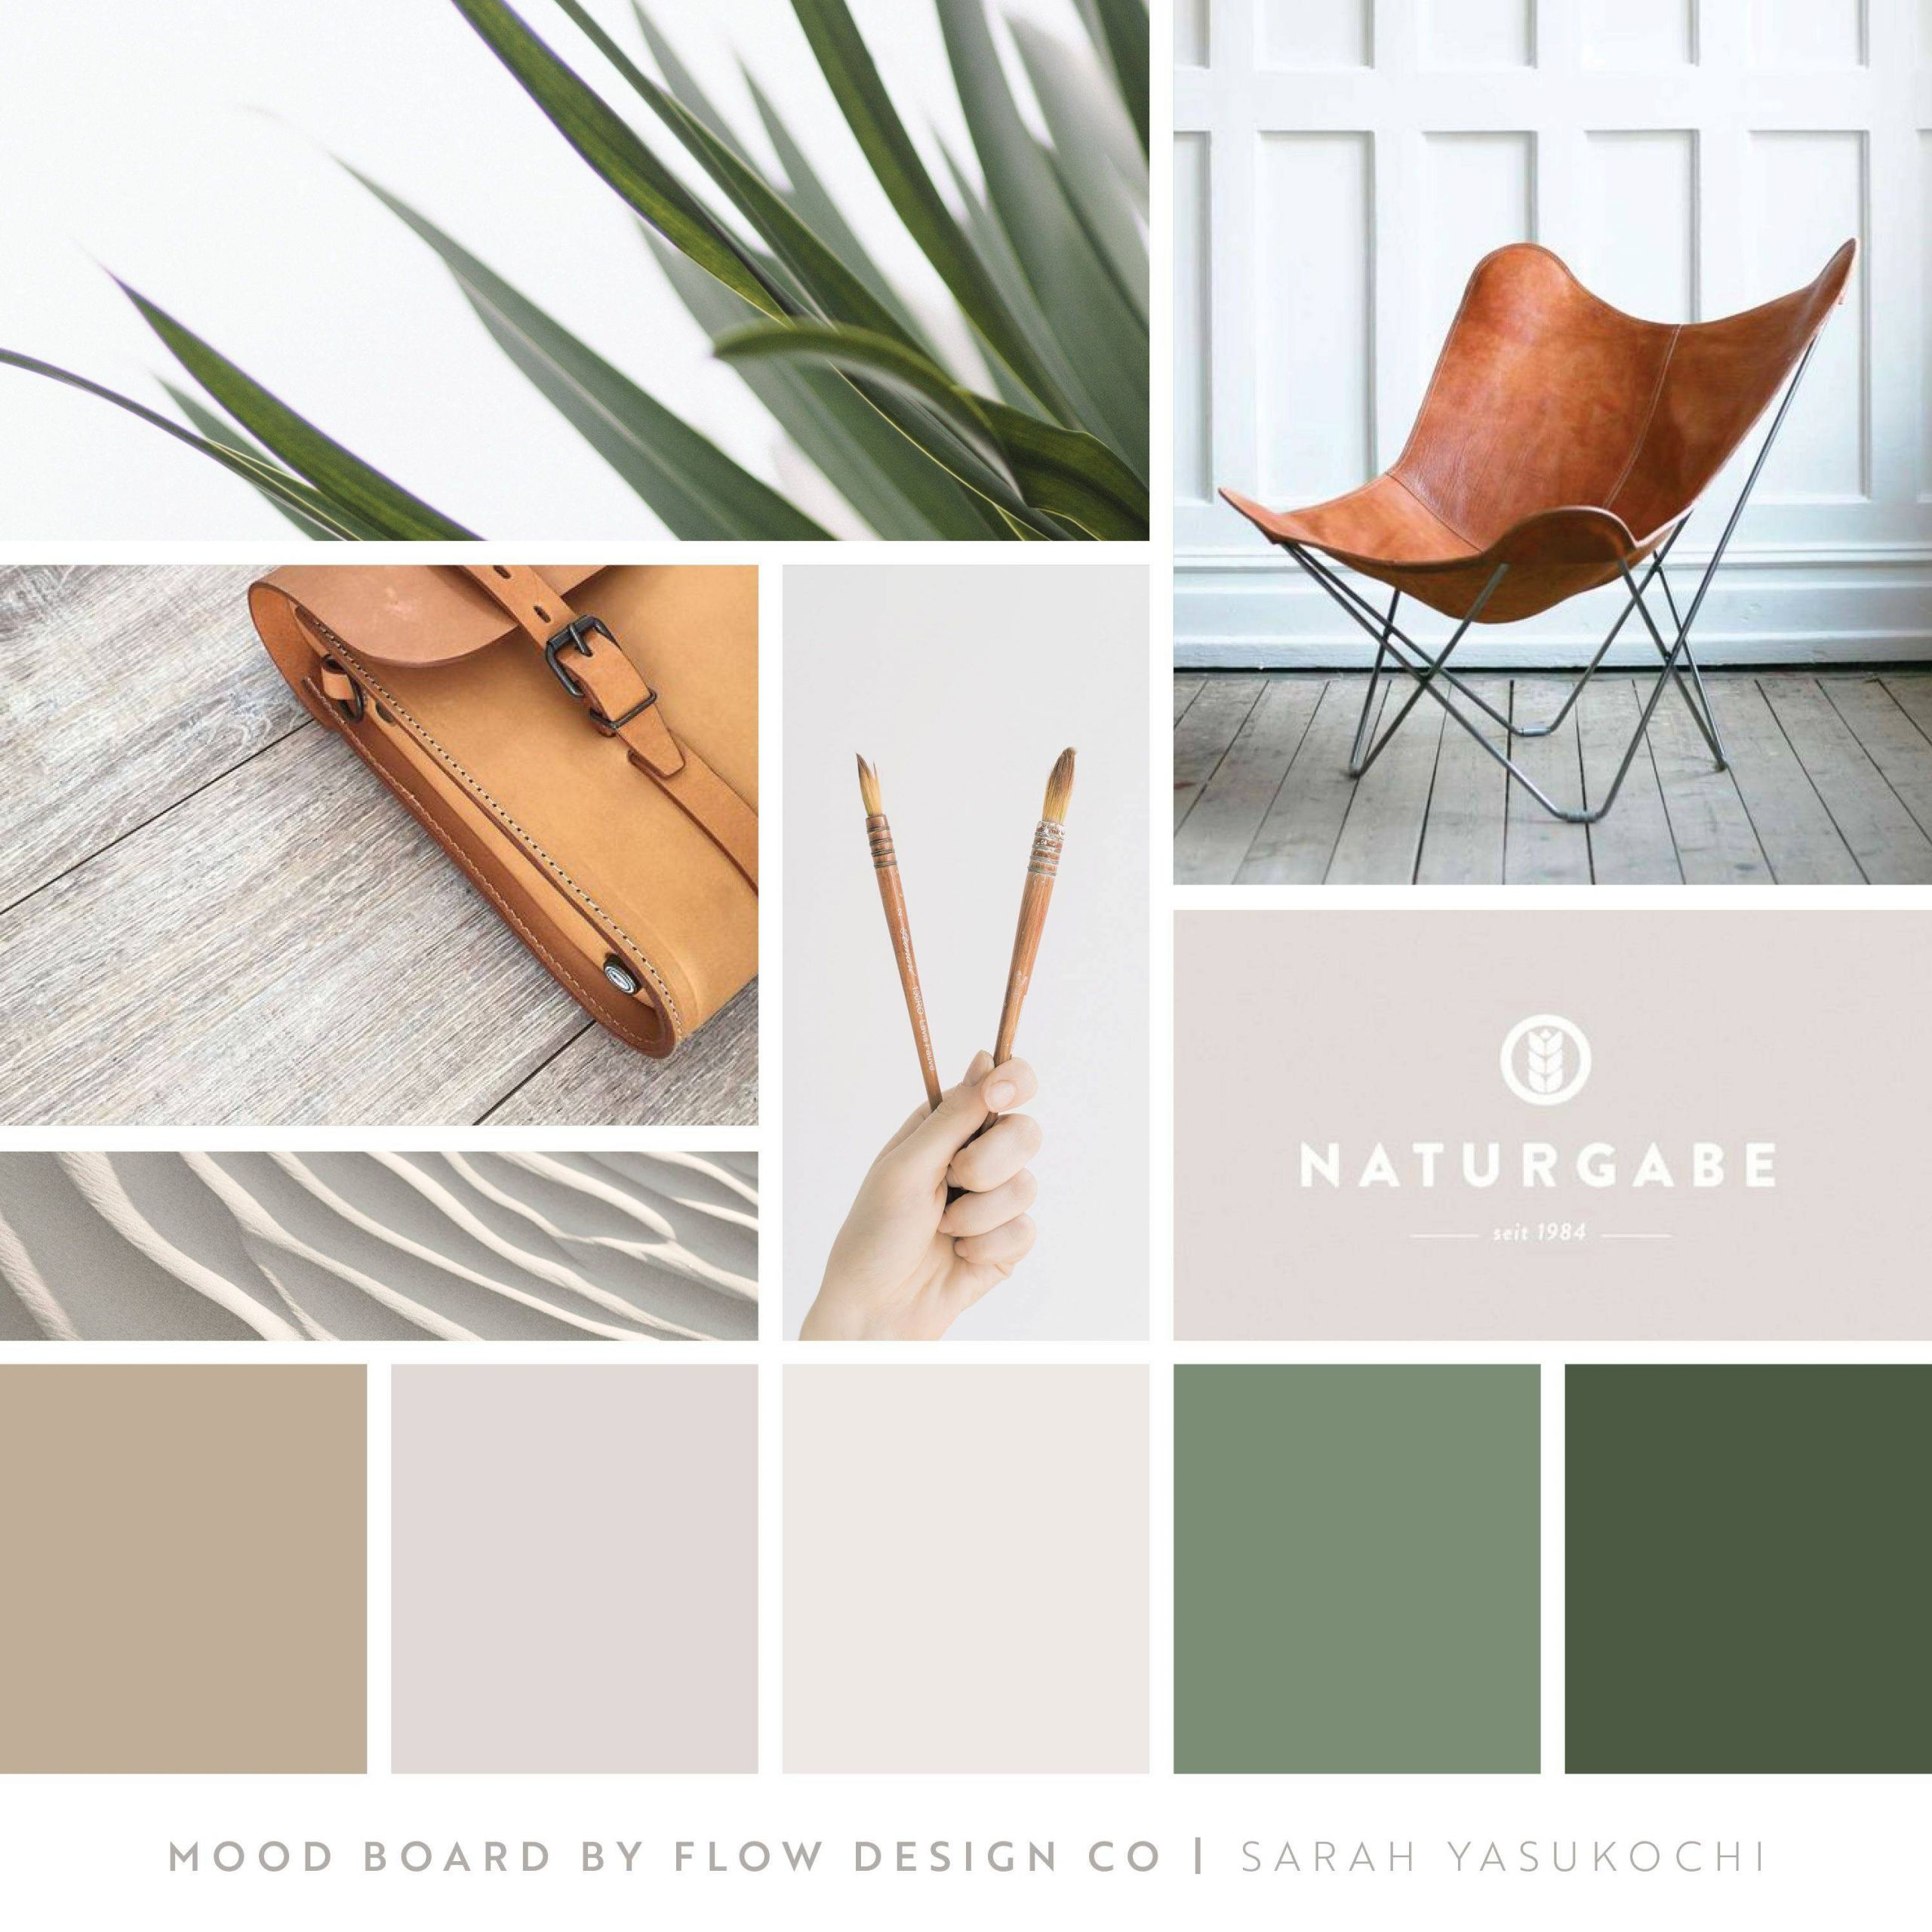 Moods and Colors Beautiful Earth tones Mood Board